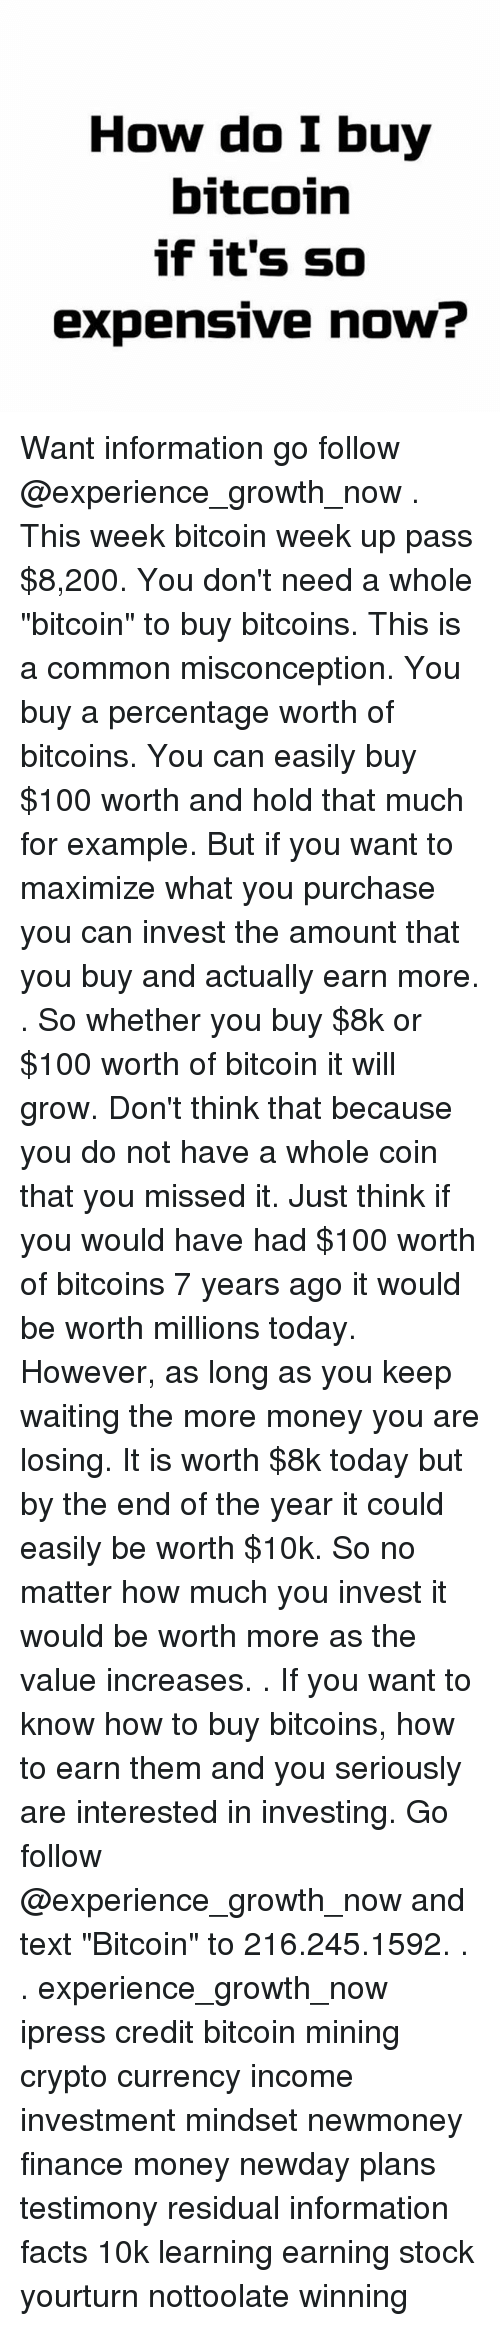 If you invest 100 in bitcoin in 2020